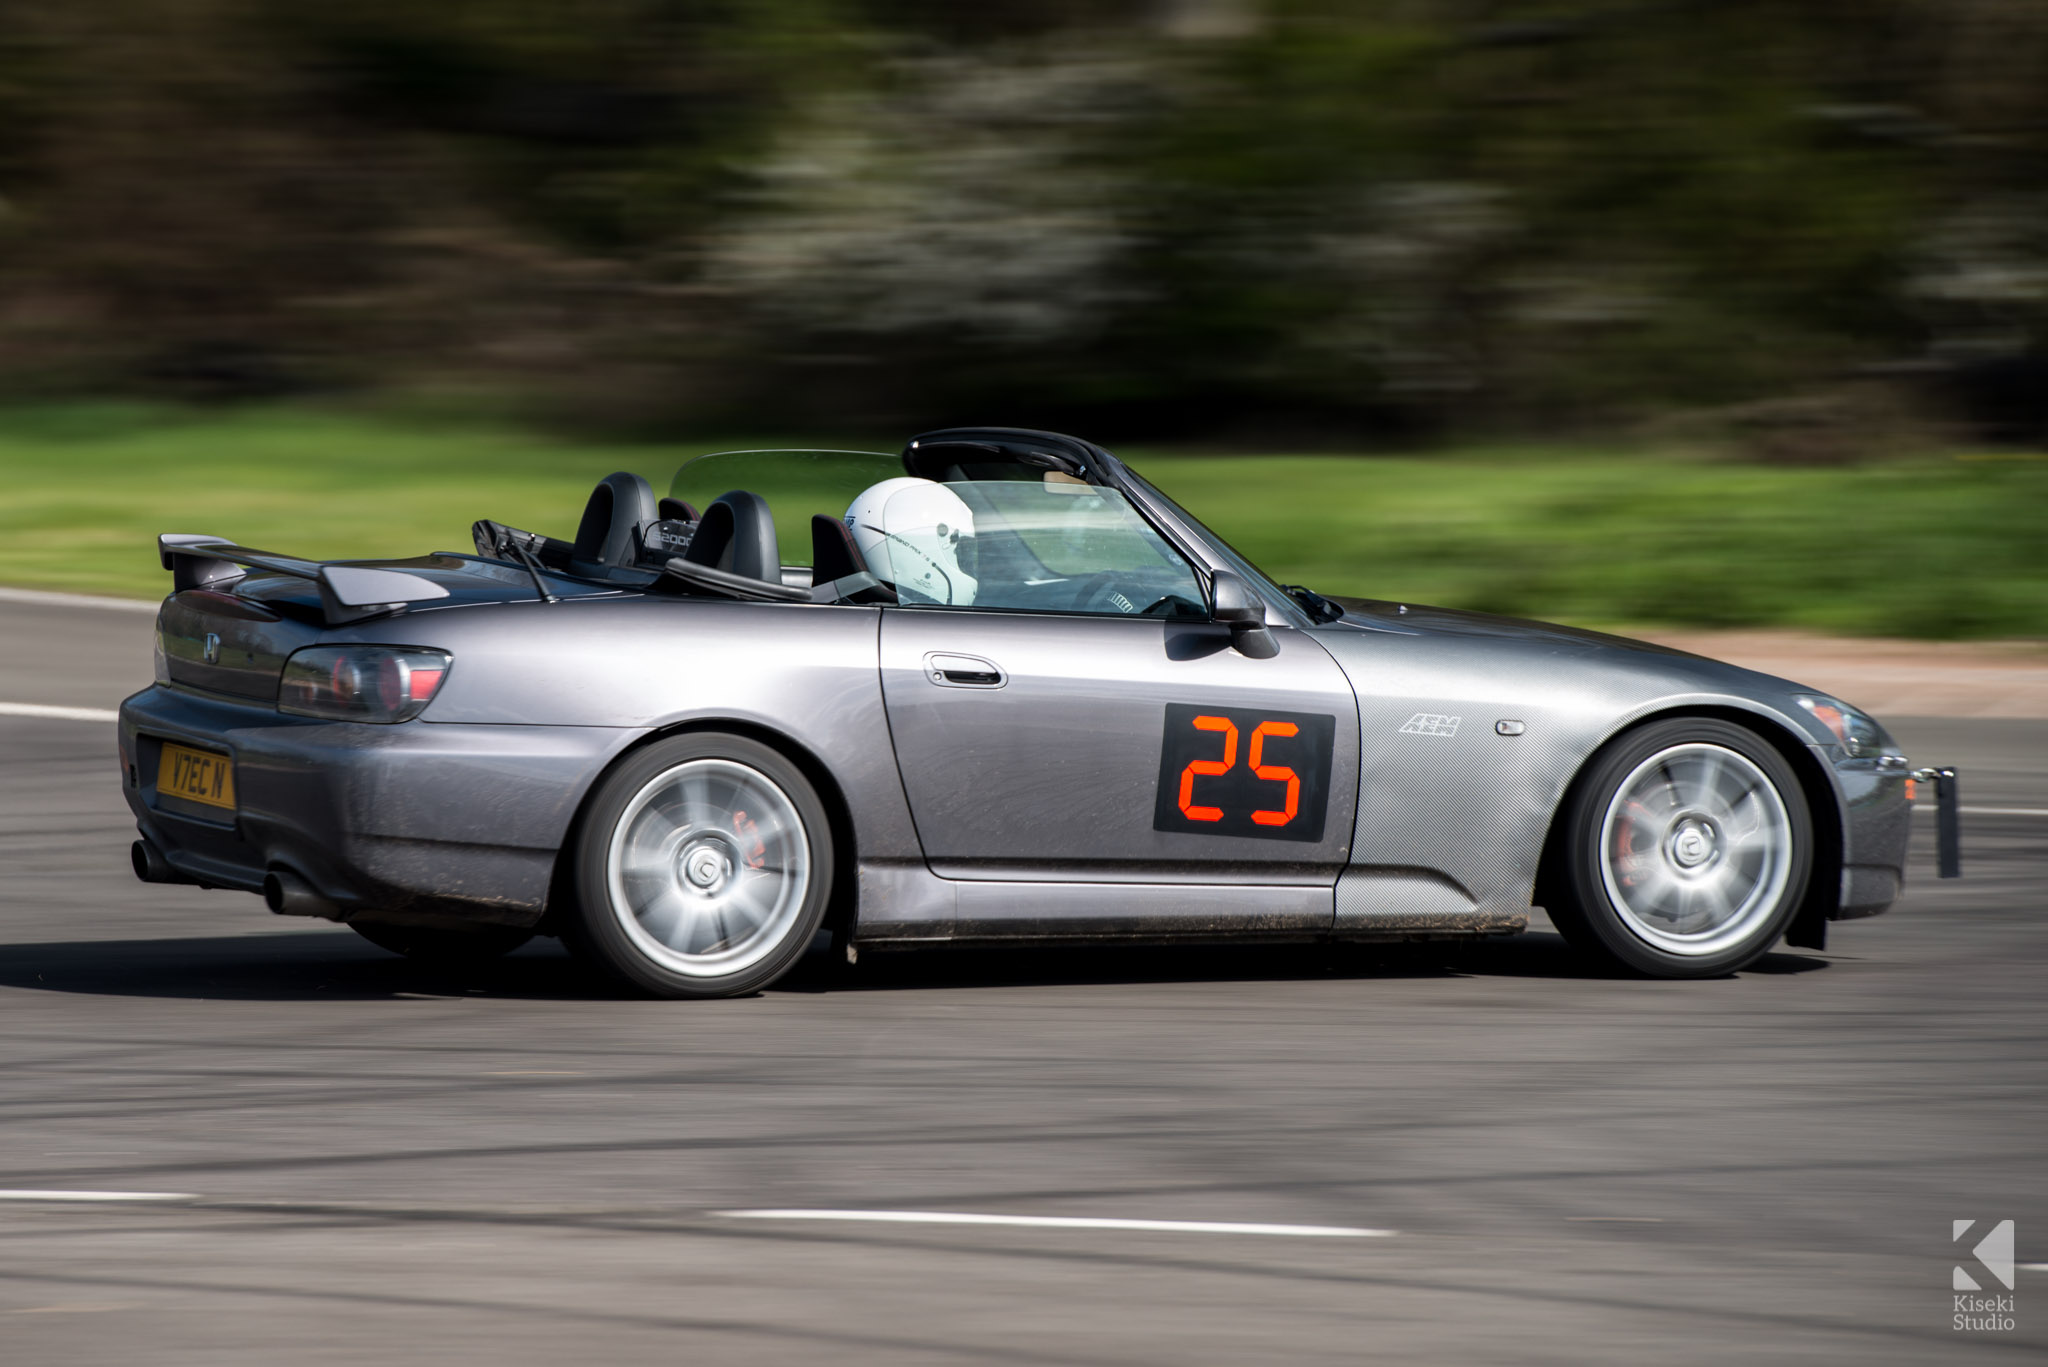 curborough-sprint-honda-s2000-moon-rock-grey-racing-panning